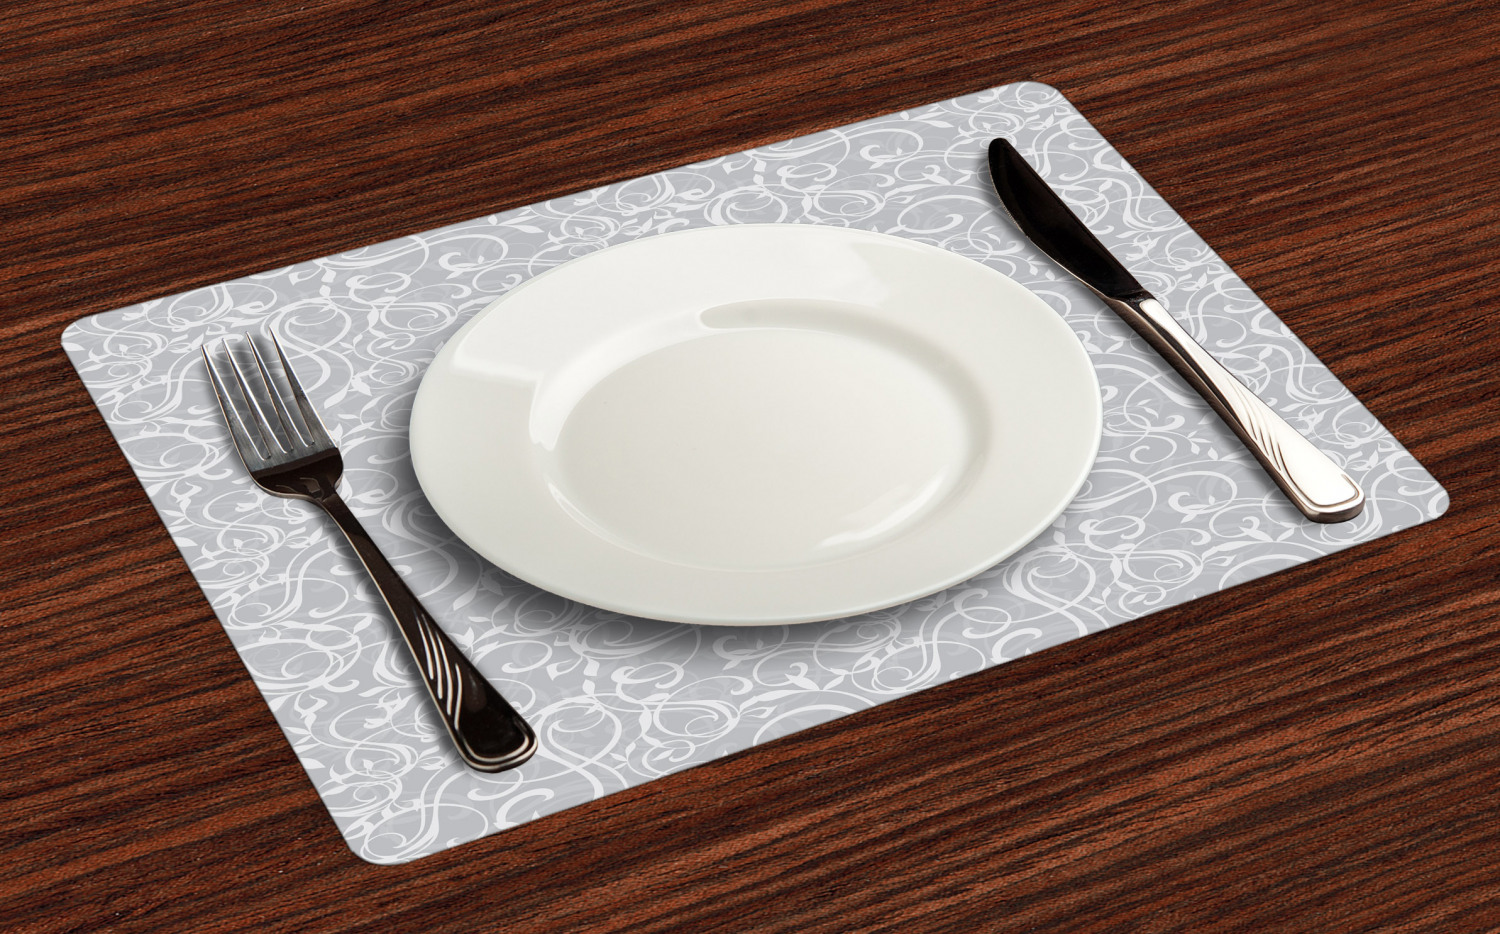 Ambesonne-Fabric-Place-Mats-Set-of-4-Placemats-for-Dining-Room-and-Kitchen-Table thumbnail 209